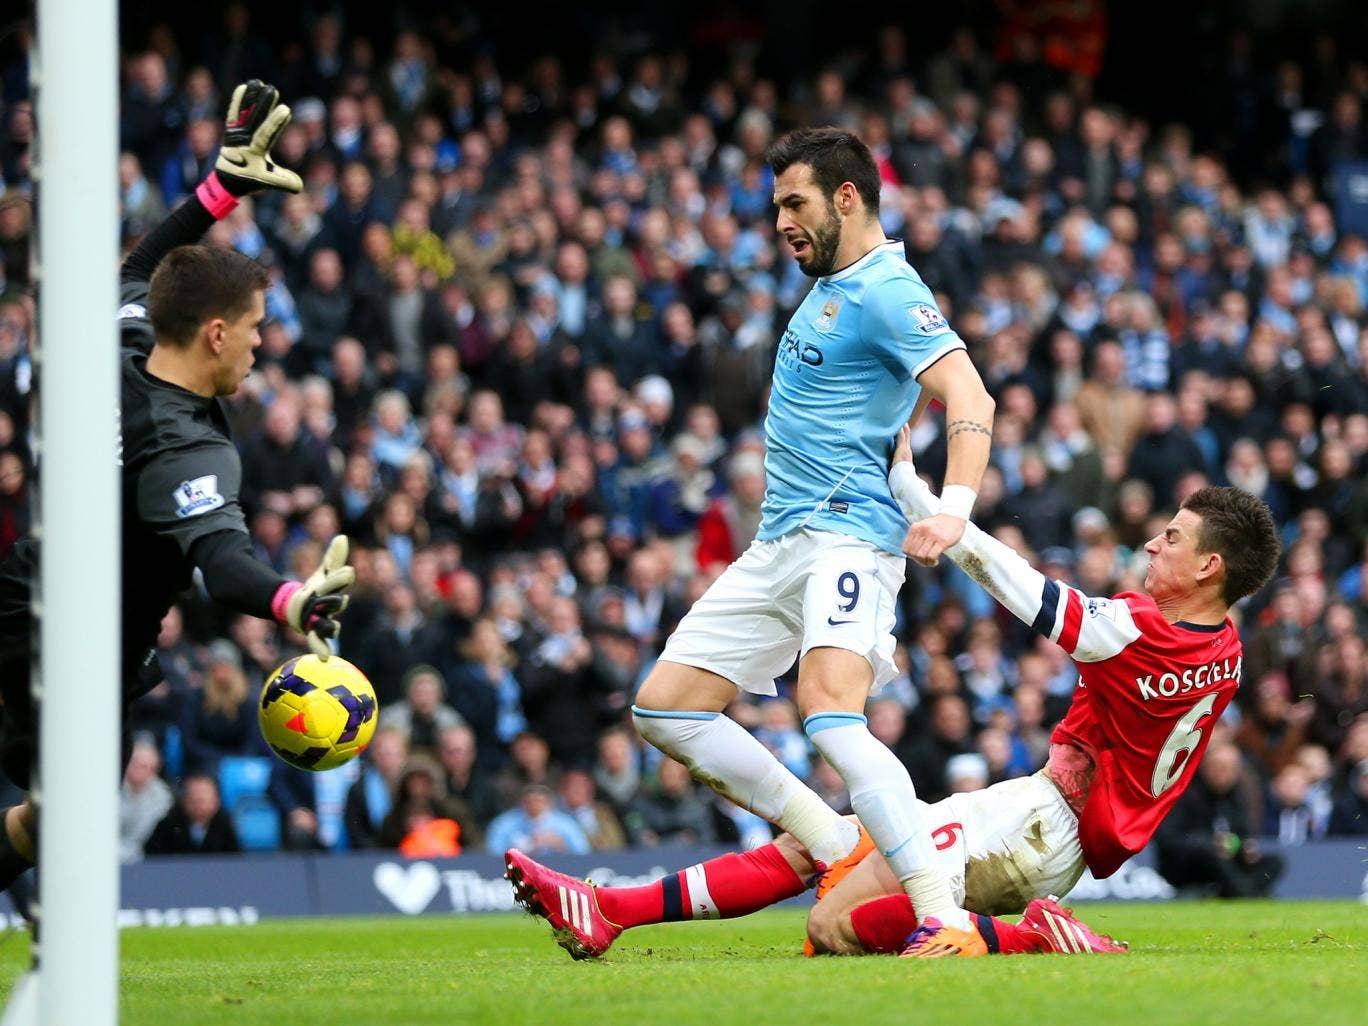 Laurent Koscielny suffered a 'deep laceration to the knee' in this collision with Alvaro Negredo